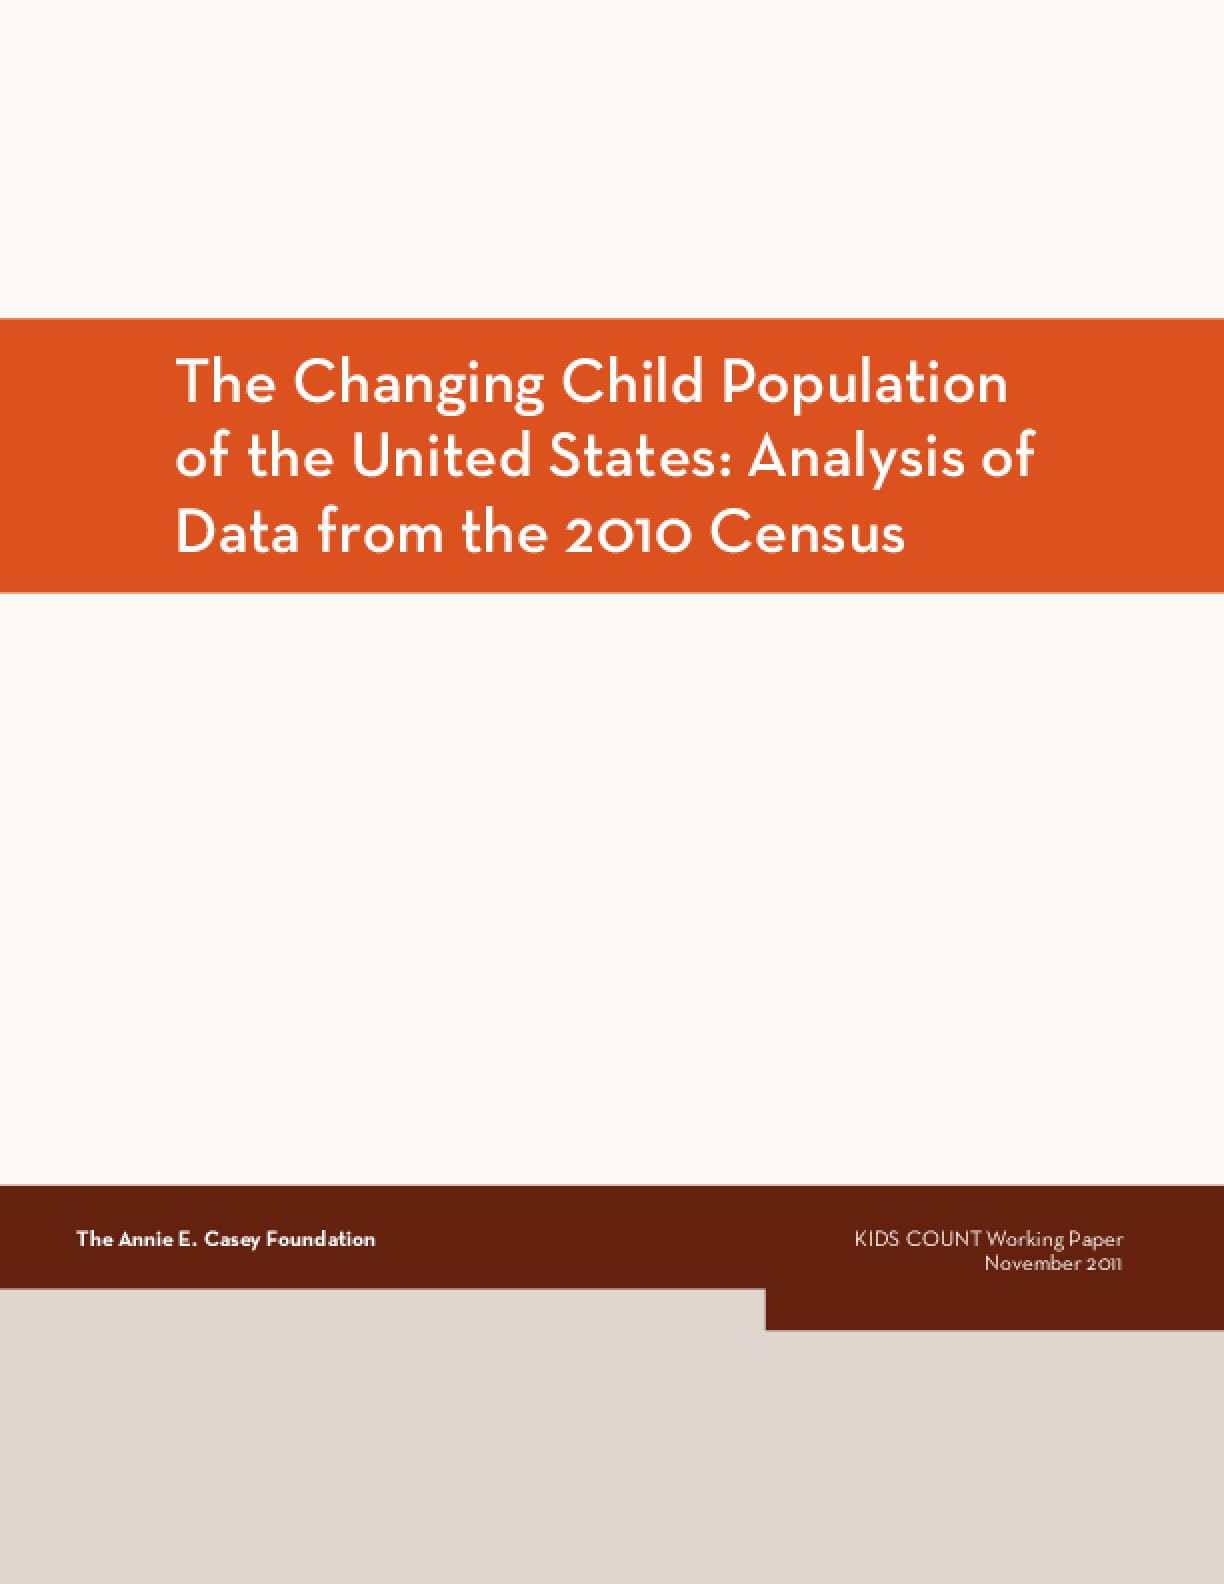 The Changing Child Population of the United States: Analysis of Data From the 2010 Census